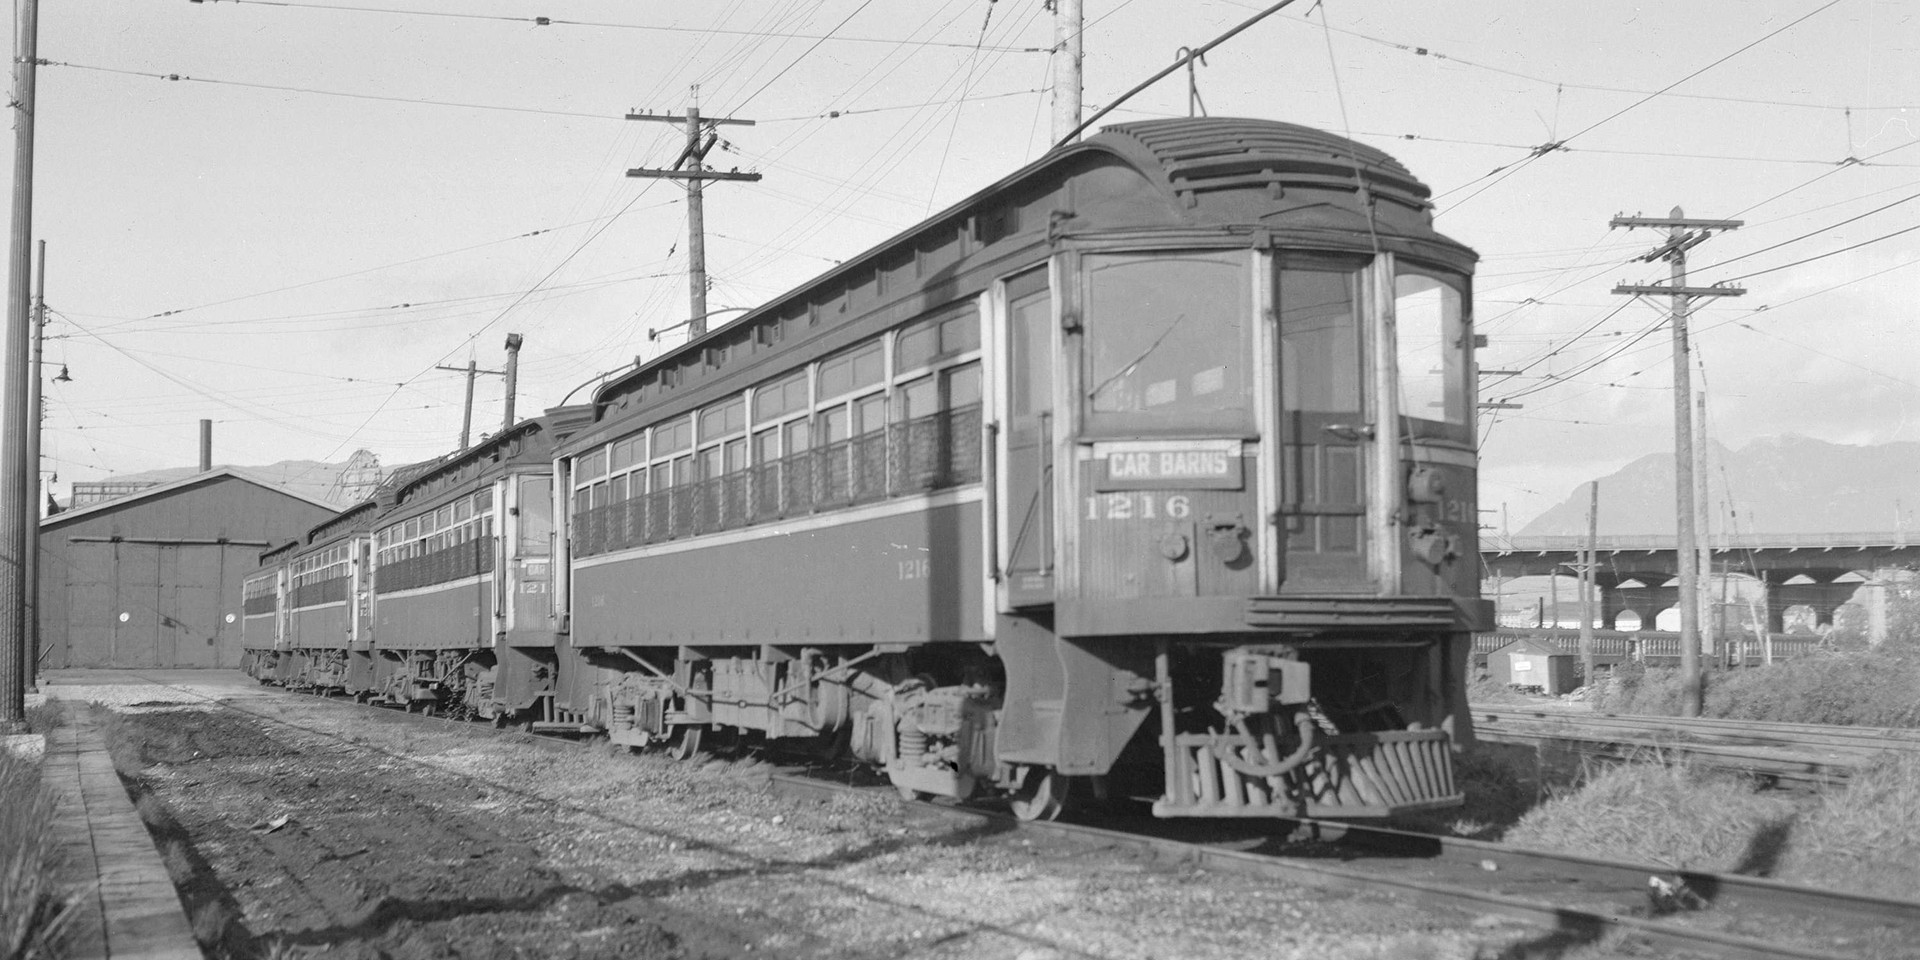 B.C. Electric Railway Interurban Car at Kitsilano car barns